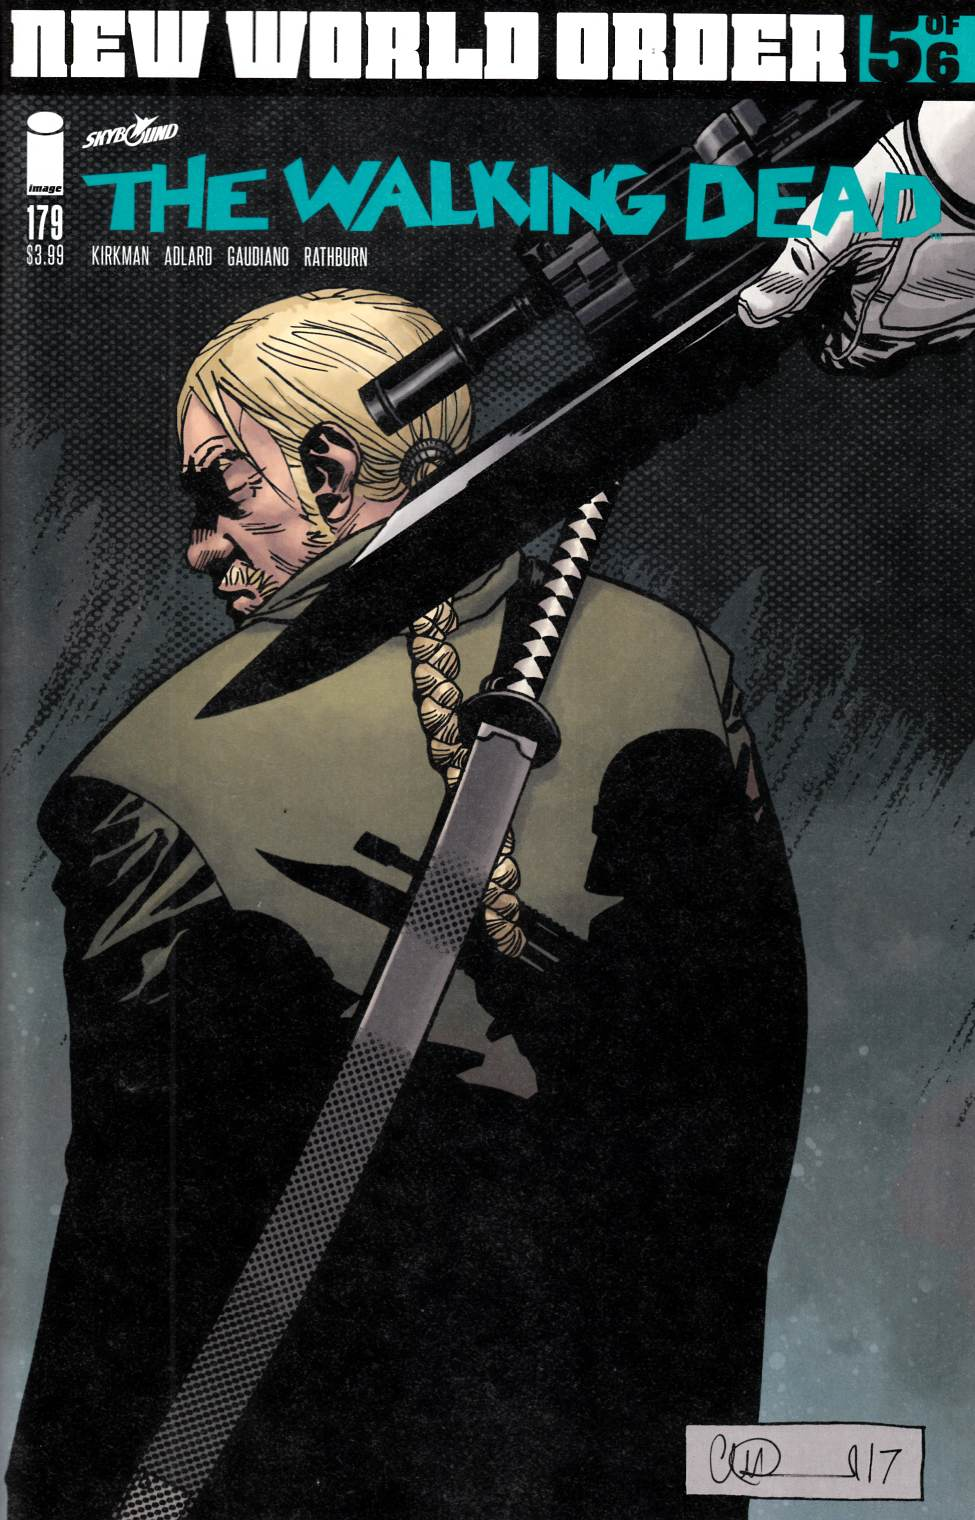 Walking Dead #179 Cover A [Image Comic]